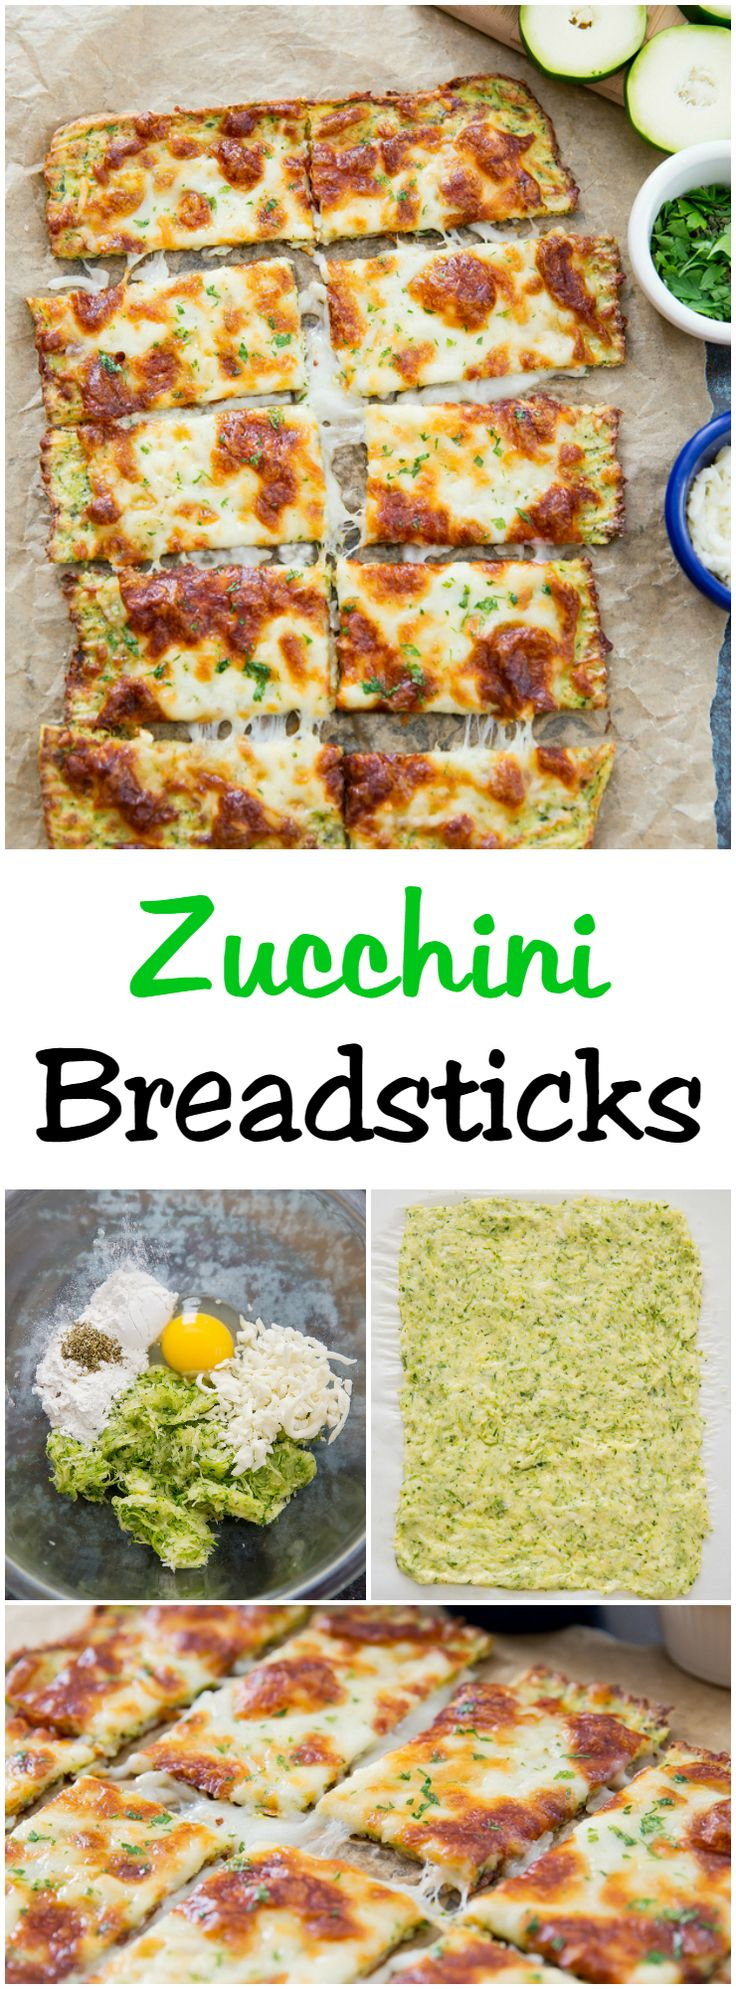 Zucchini Breadsticks. Zucchini crust bread topped with cheese. Delicious low carb alternative to regular breadsticks.